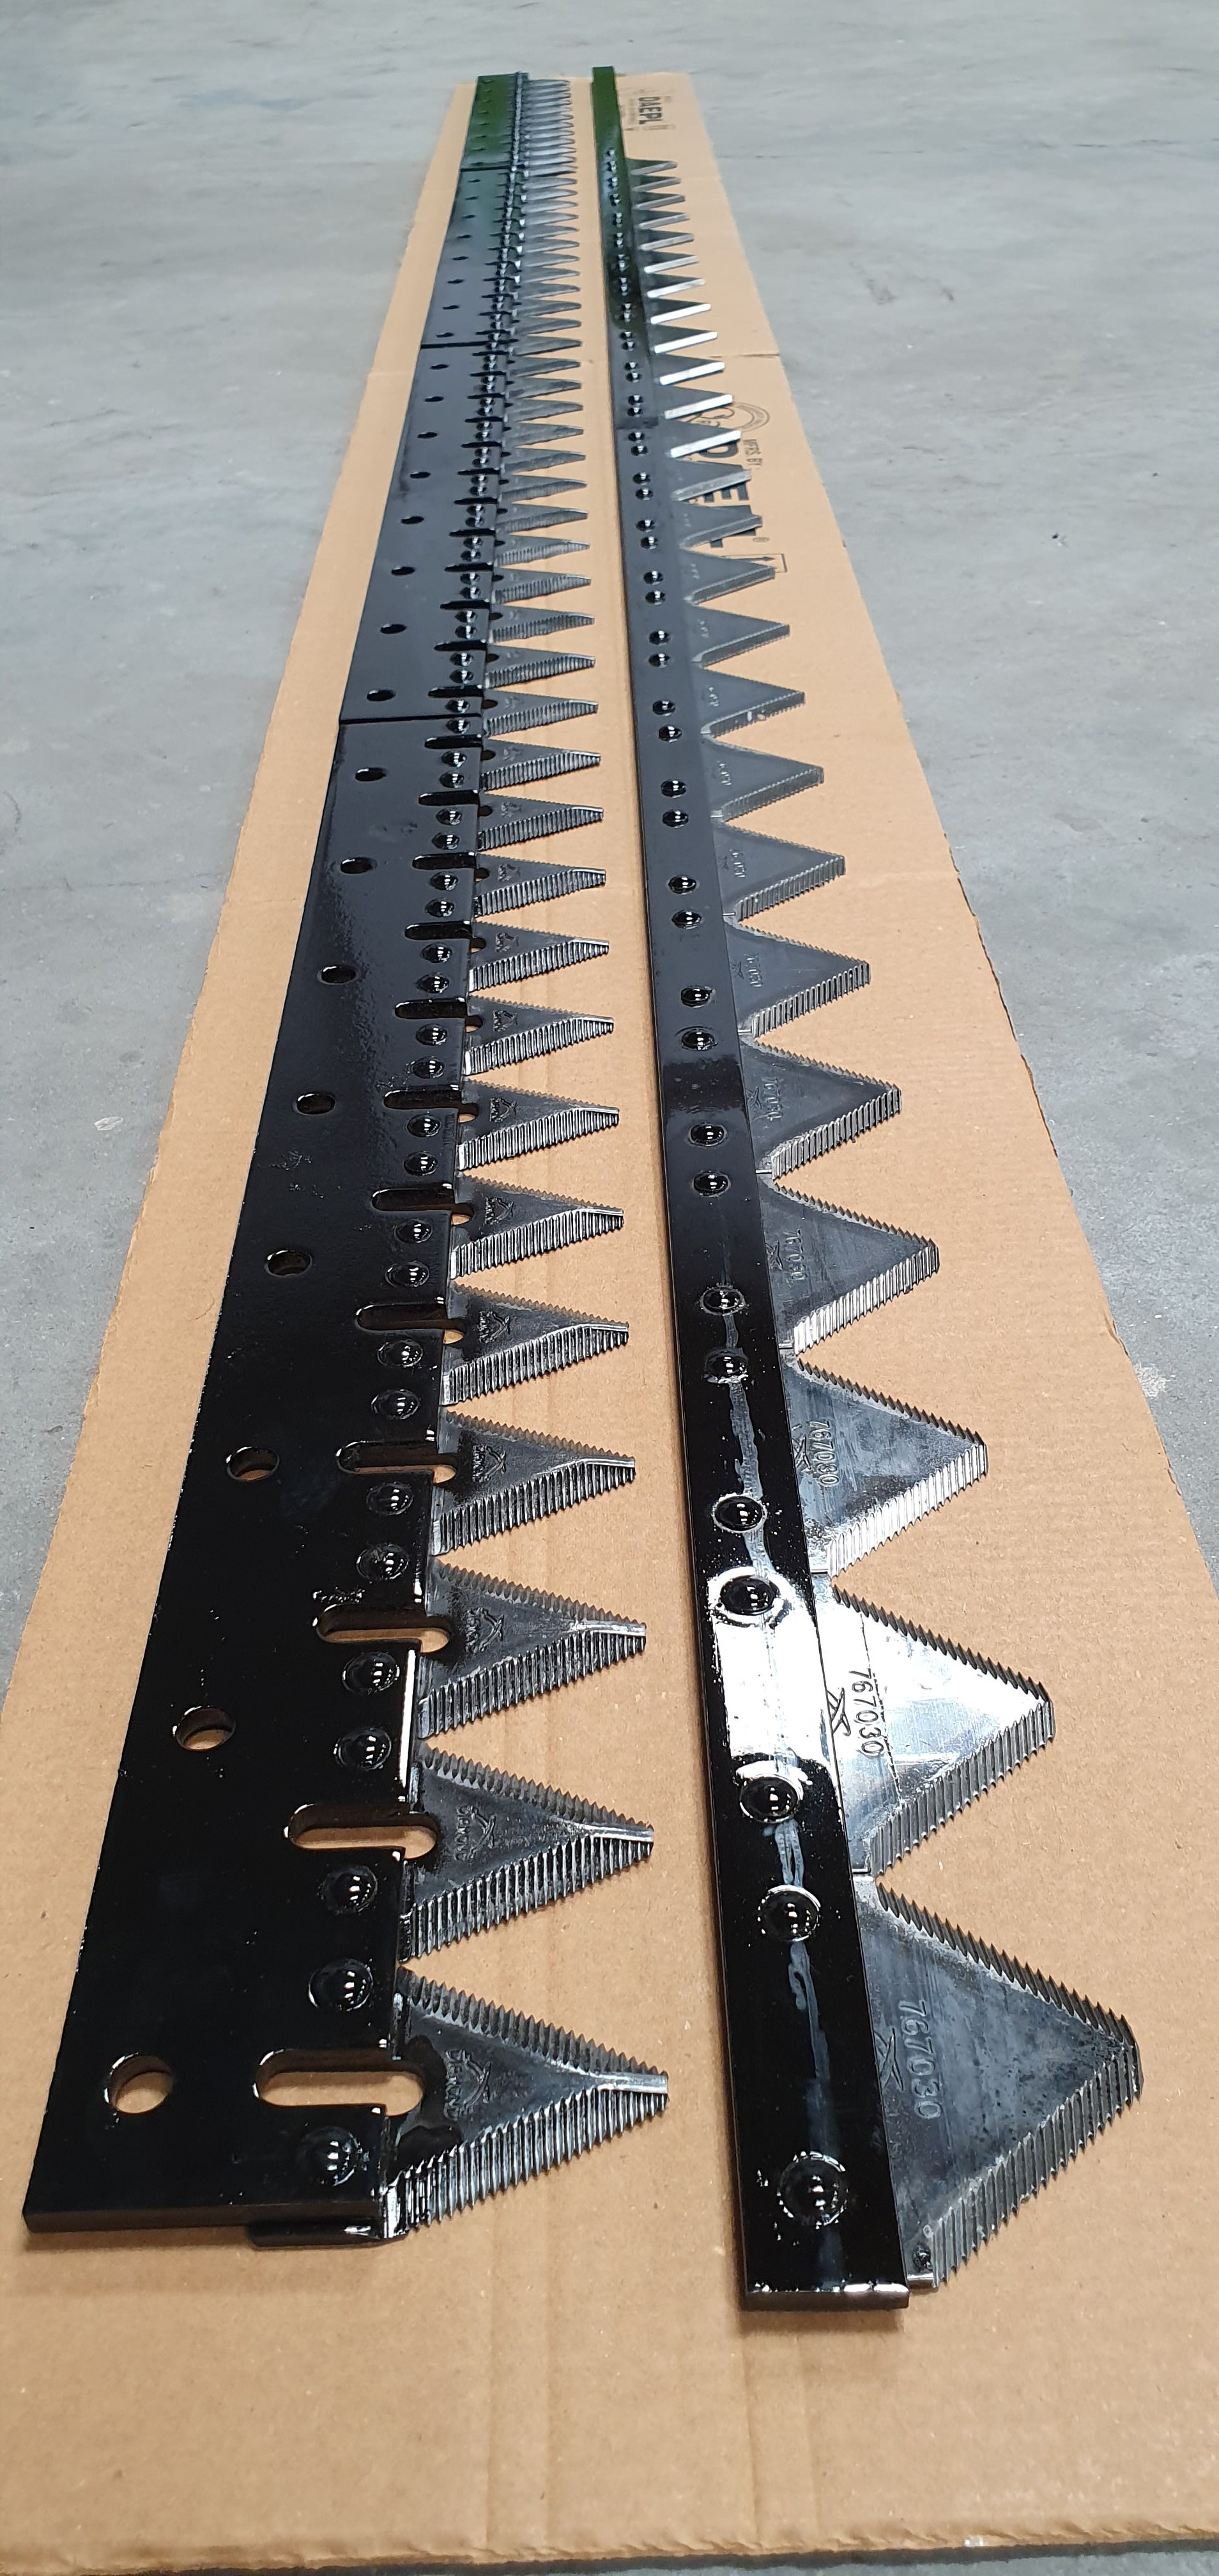 COPPER BLADE ASSEMBLY